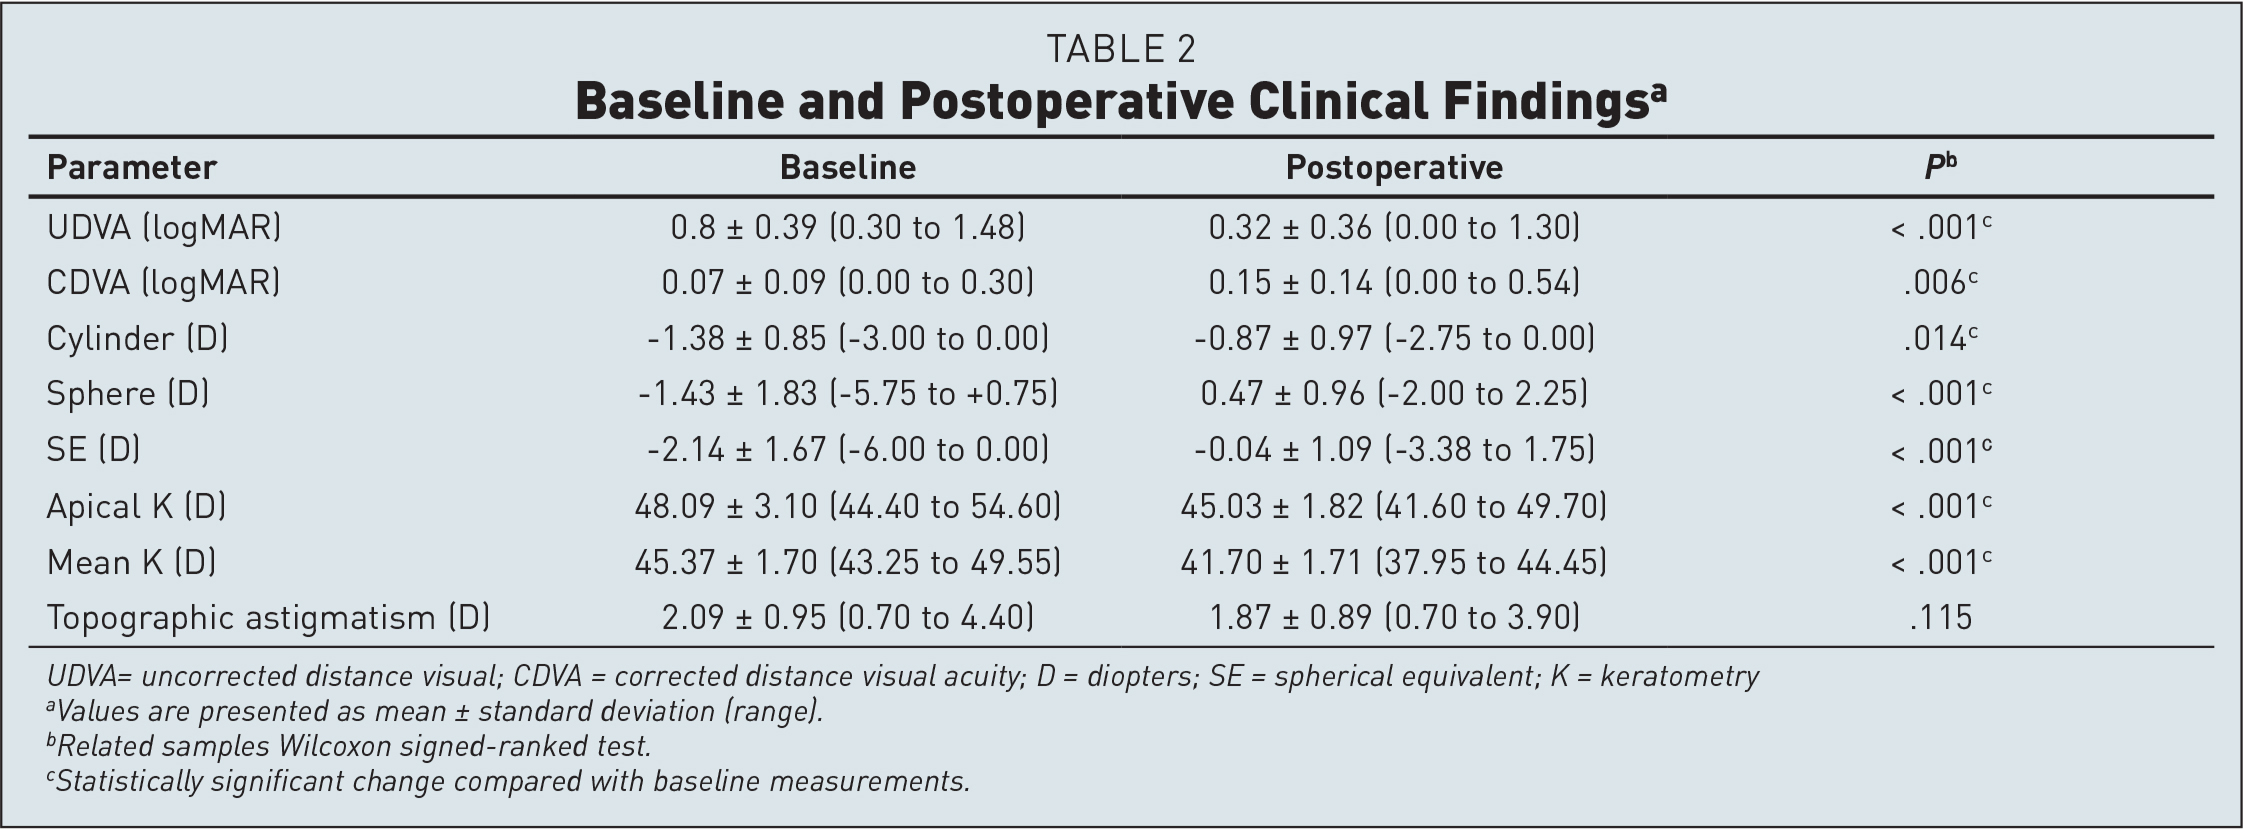 Baseline and Postoperative Clinical Findingsa